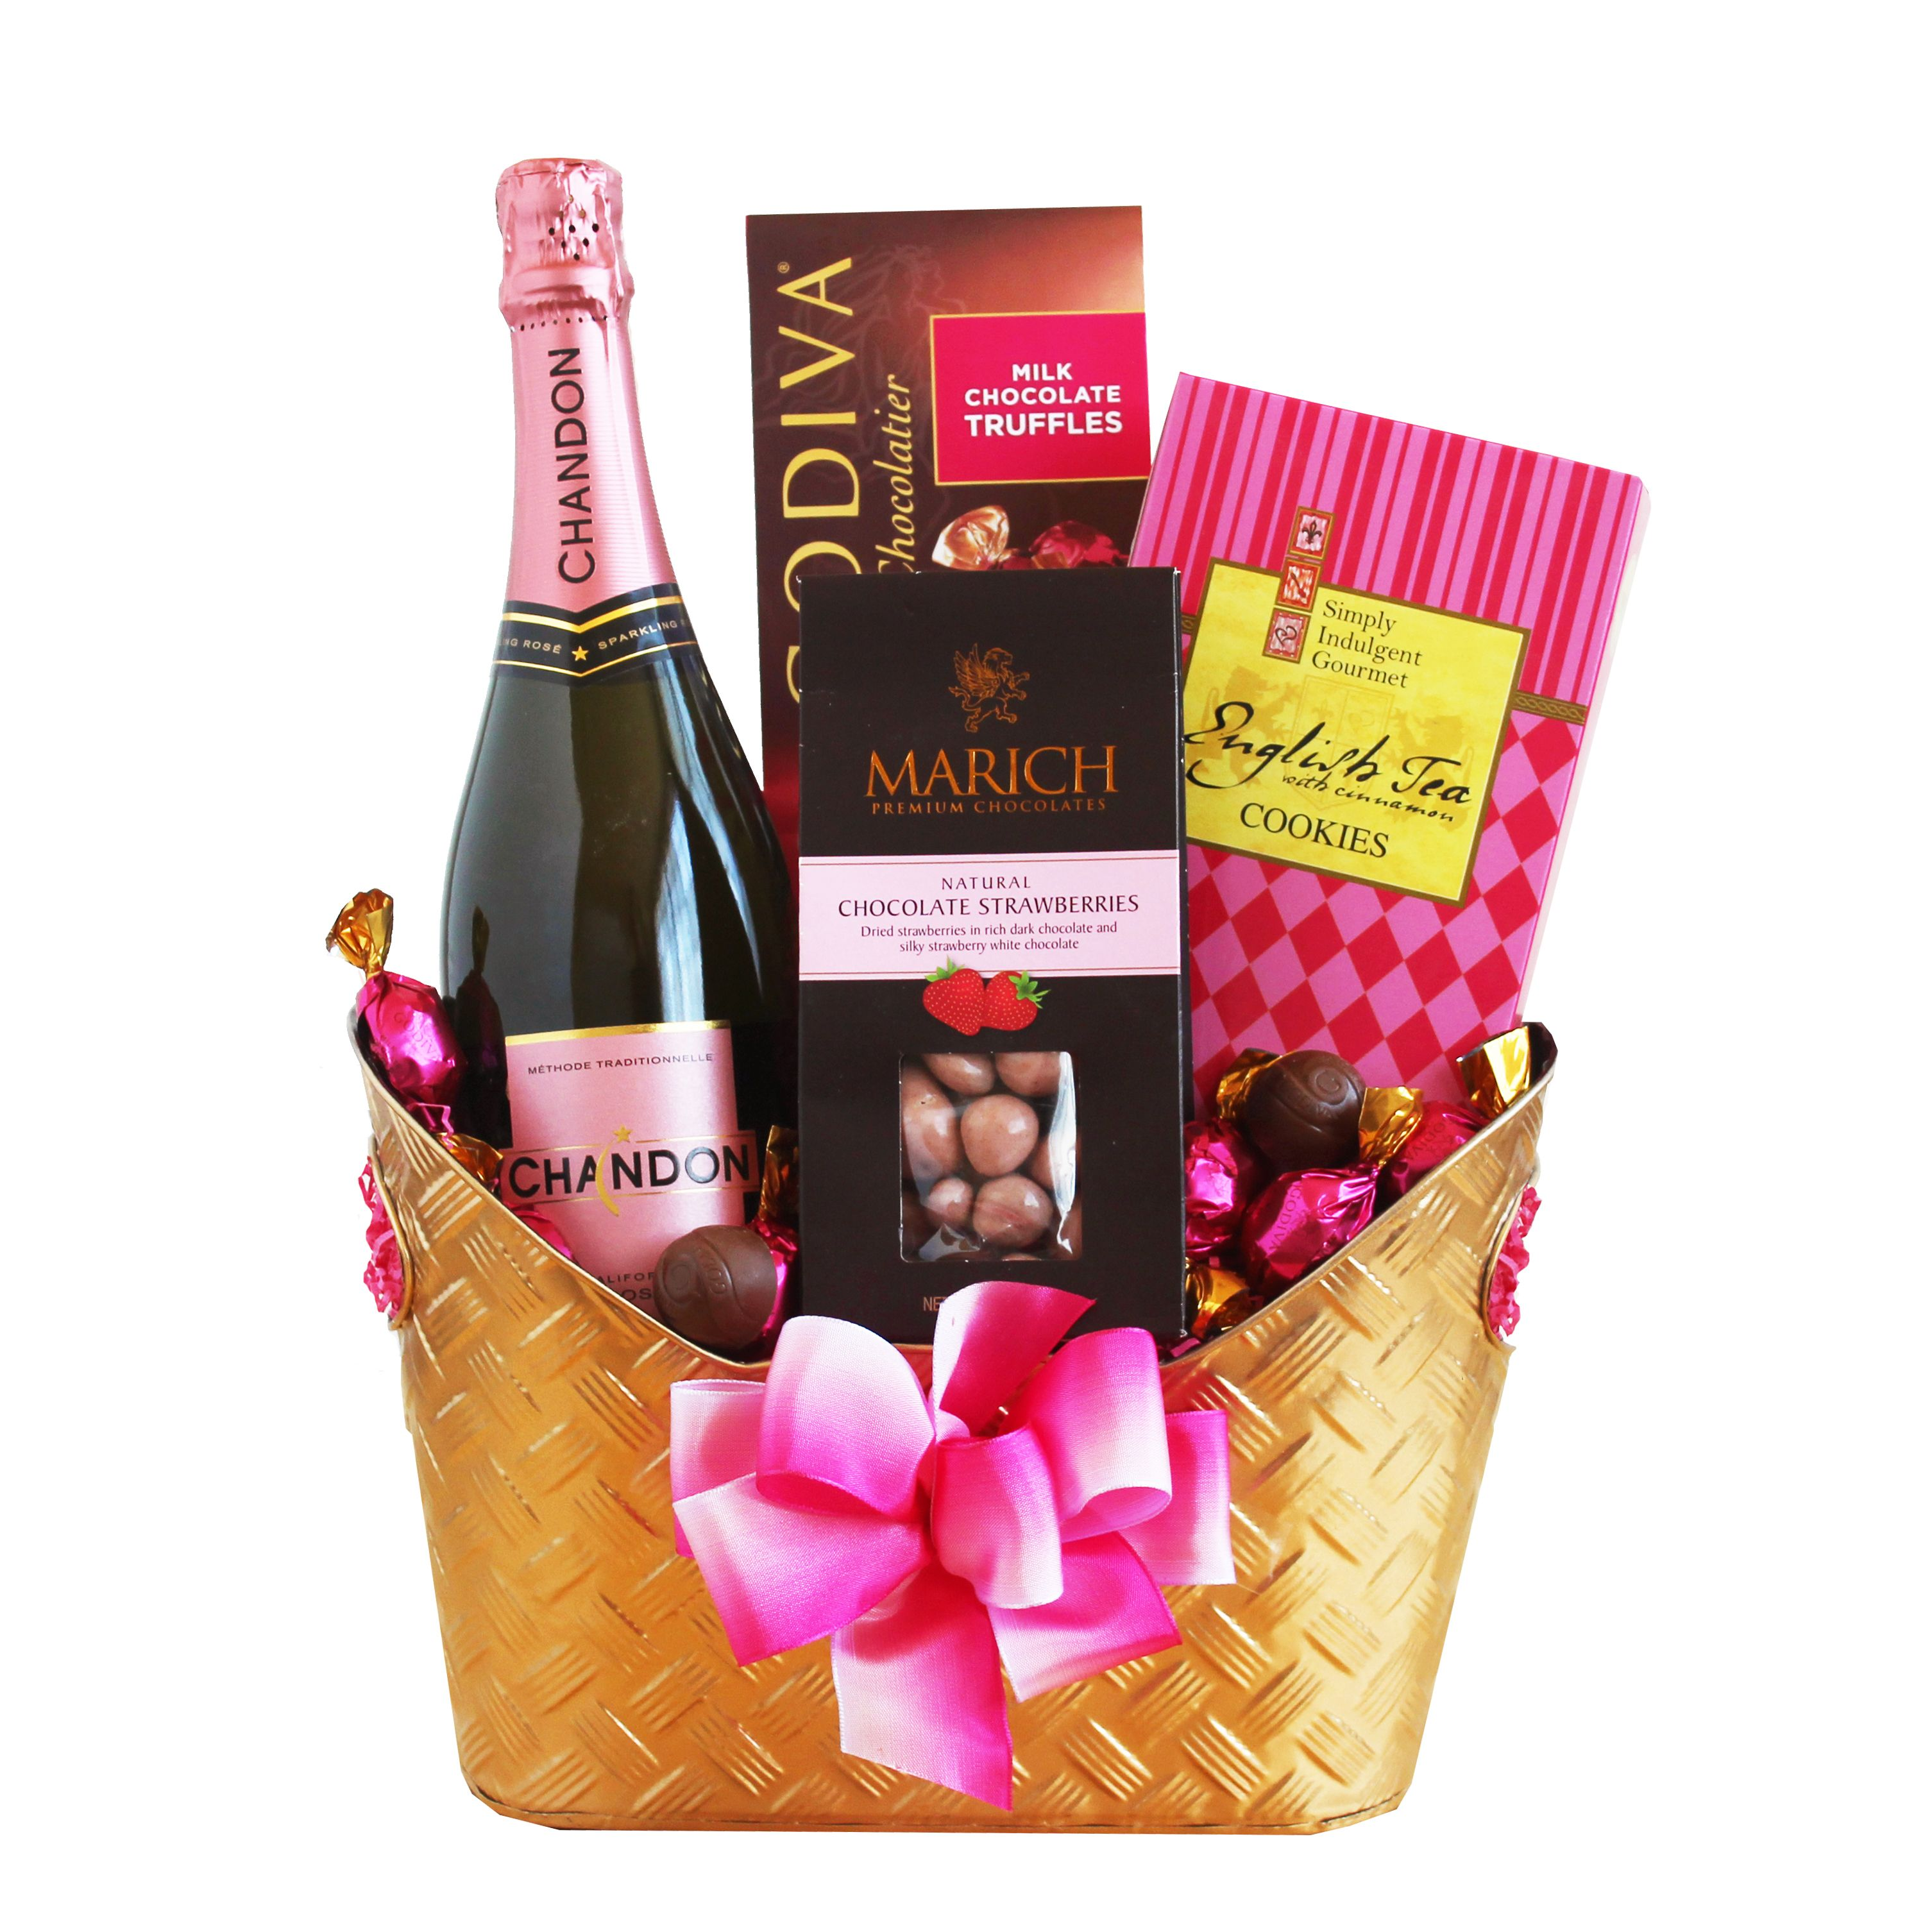 Givens Company Romance And Rose Gift Food Gift Baskets In 2020 Champagne Gift Valentine Gift Baskets Wine Gifts